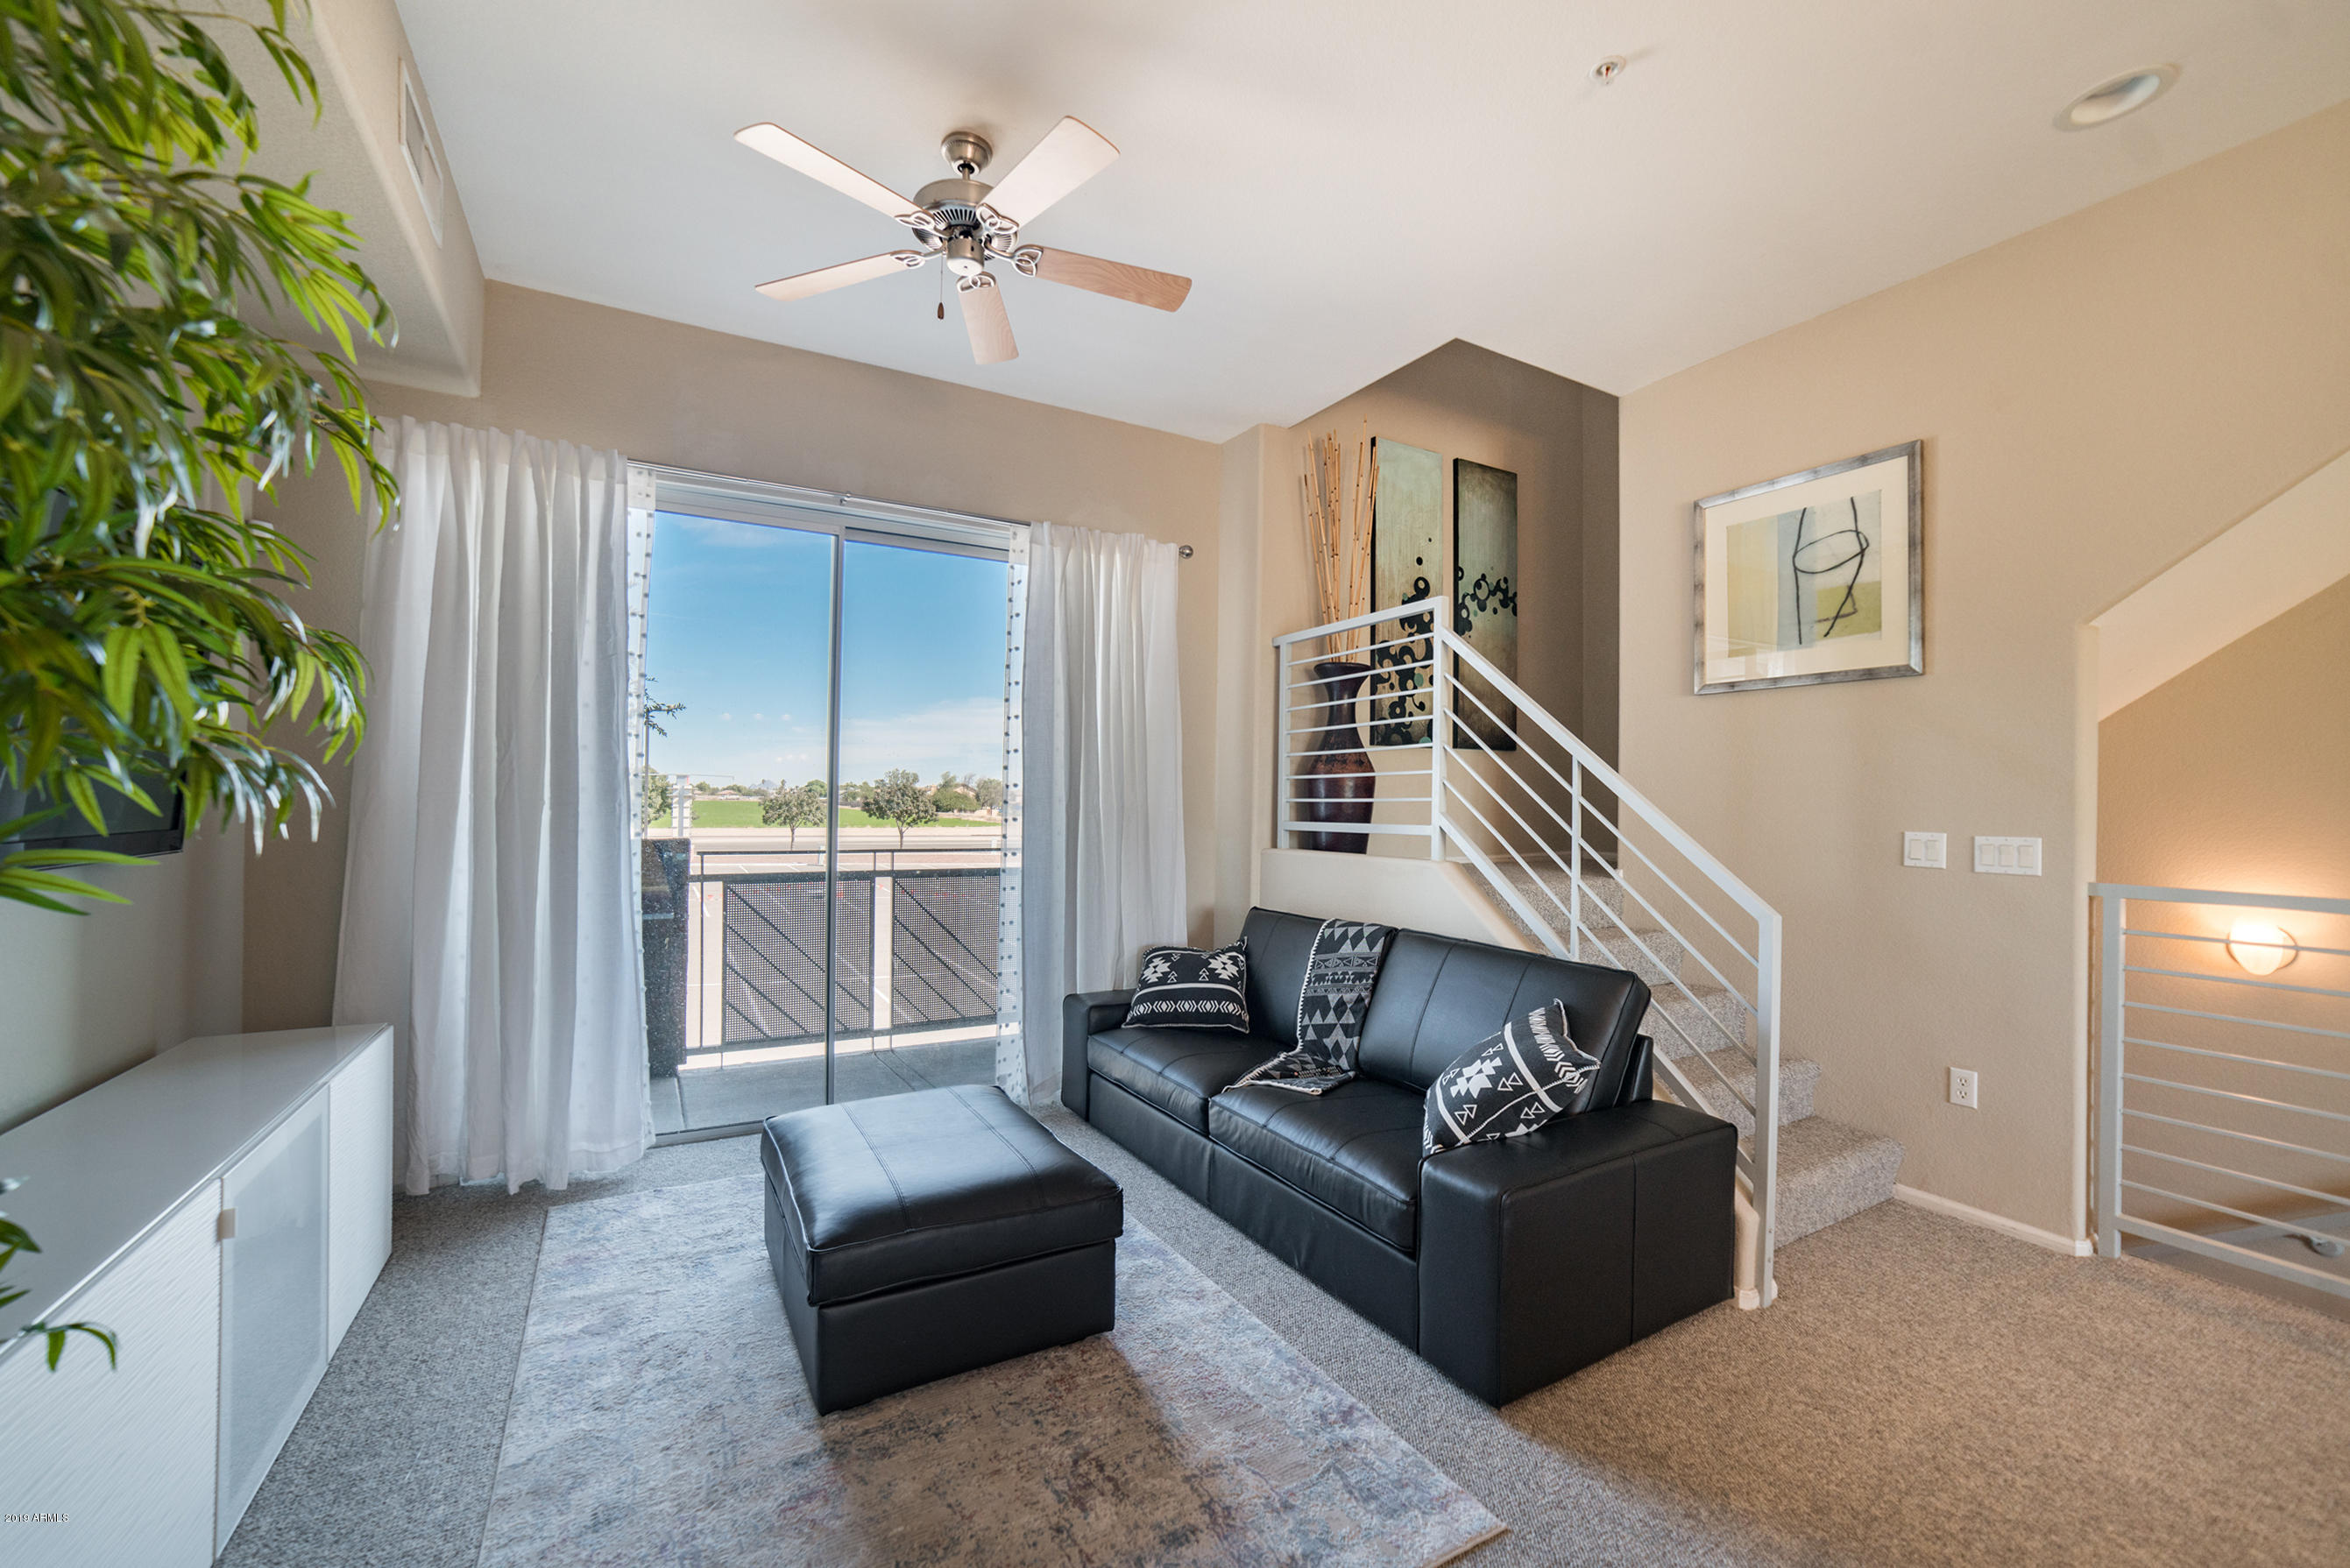 Photo of 6745 N 93RD Avenue #1154, Glendale, AZ 85305